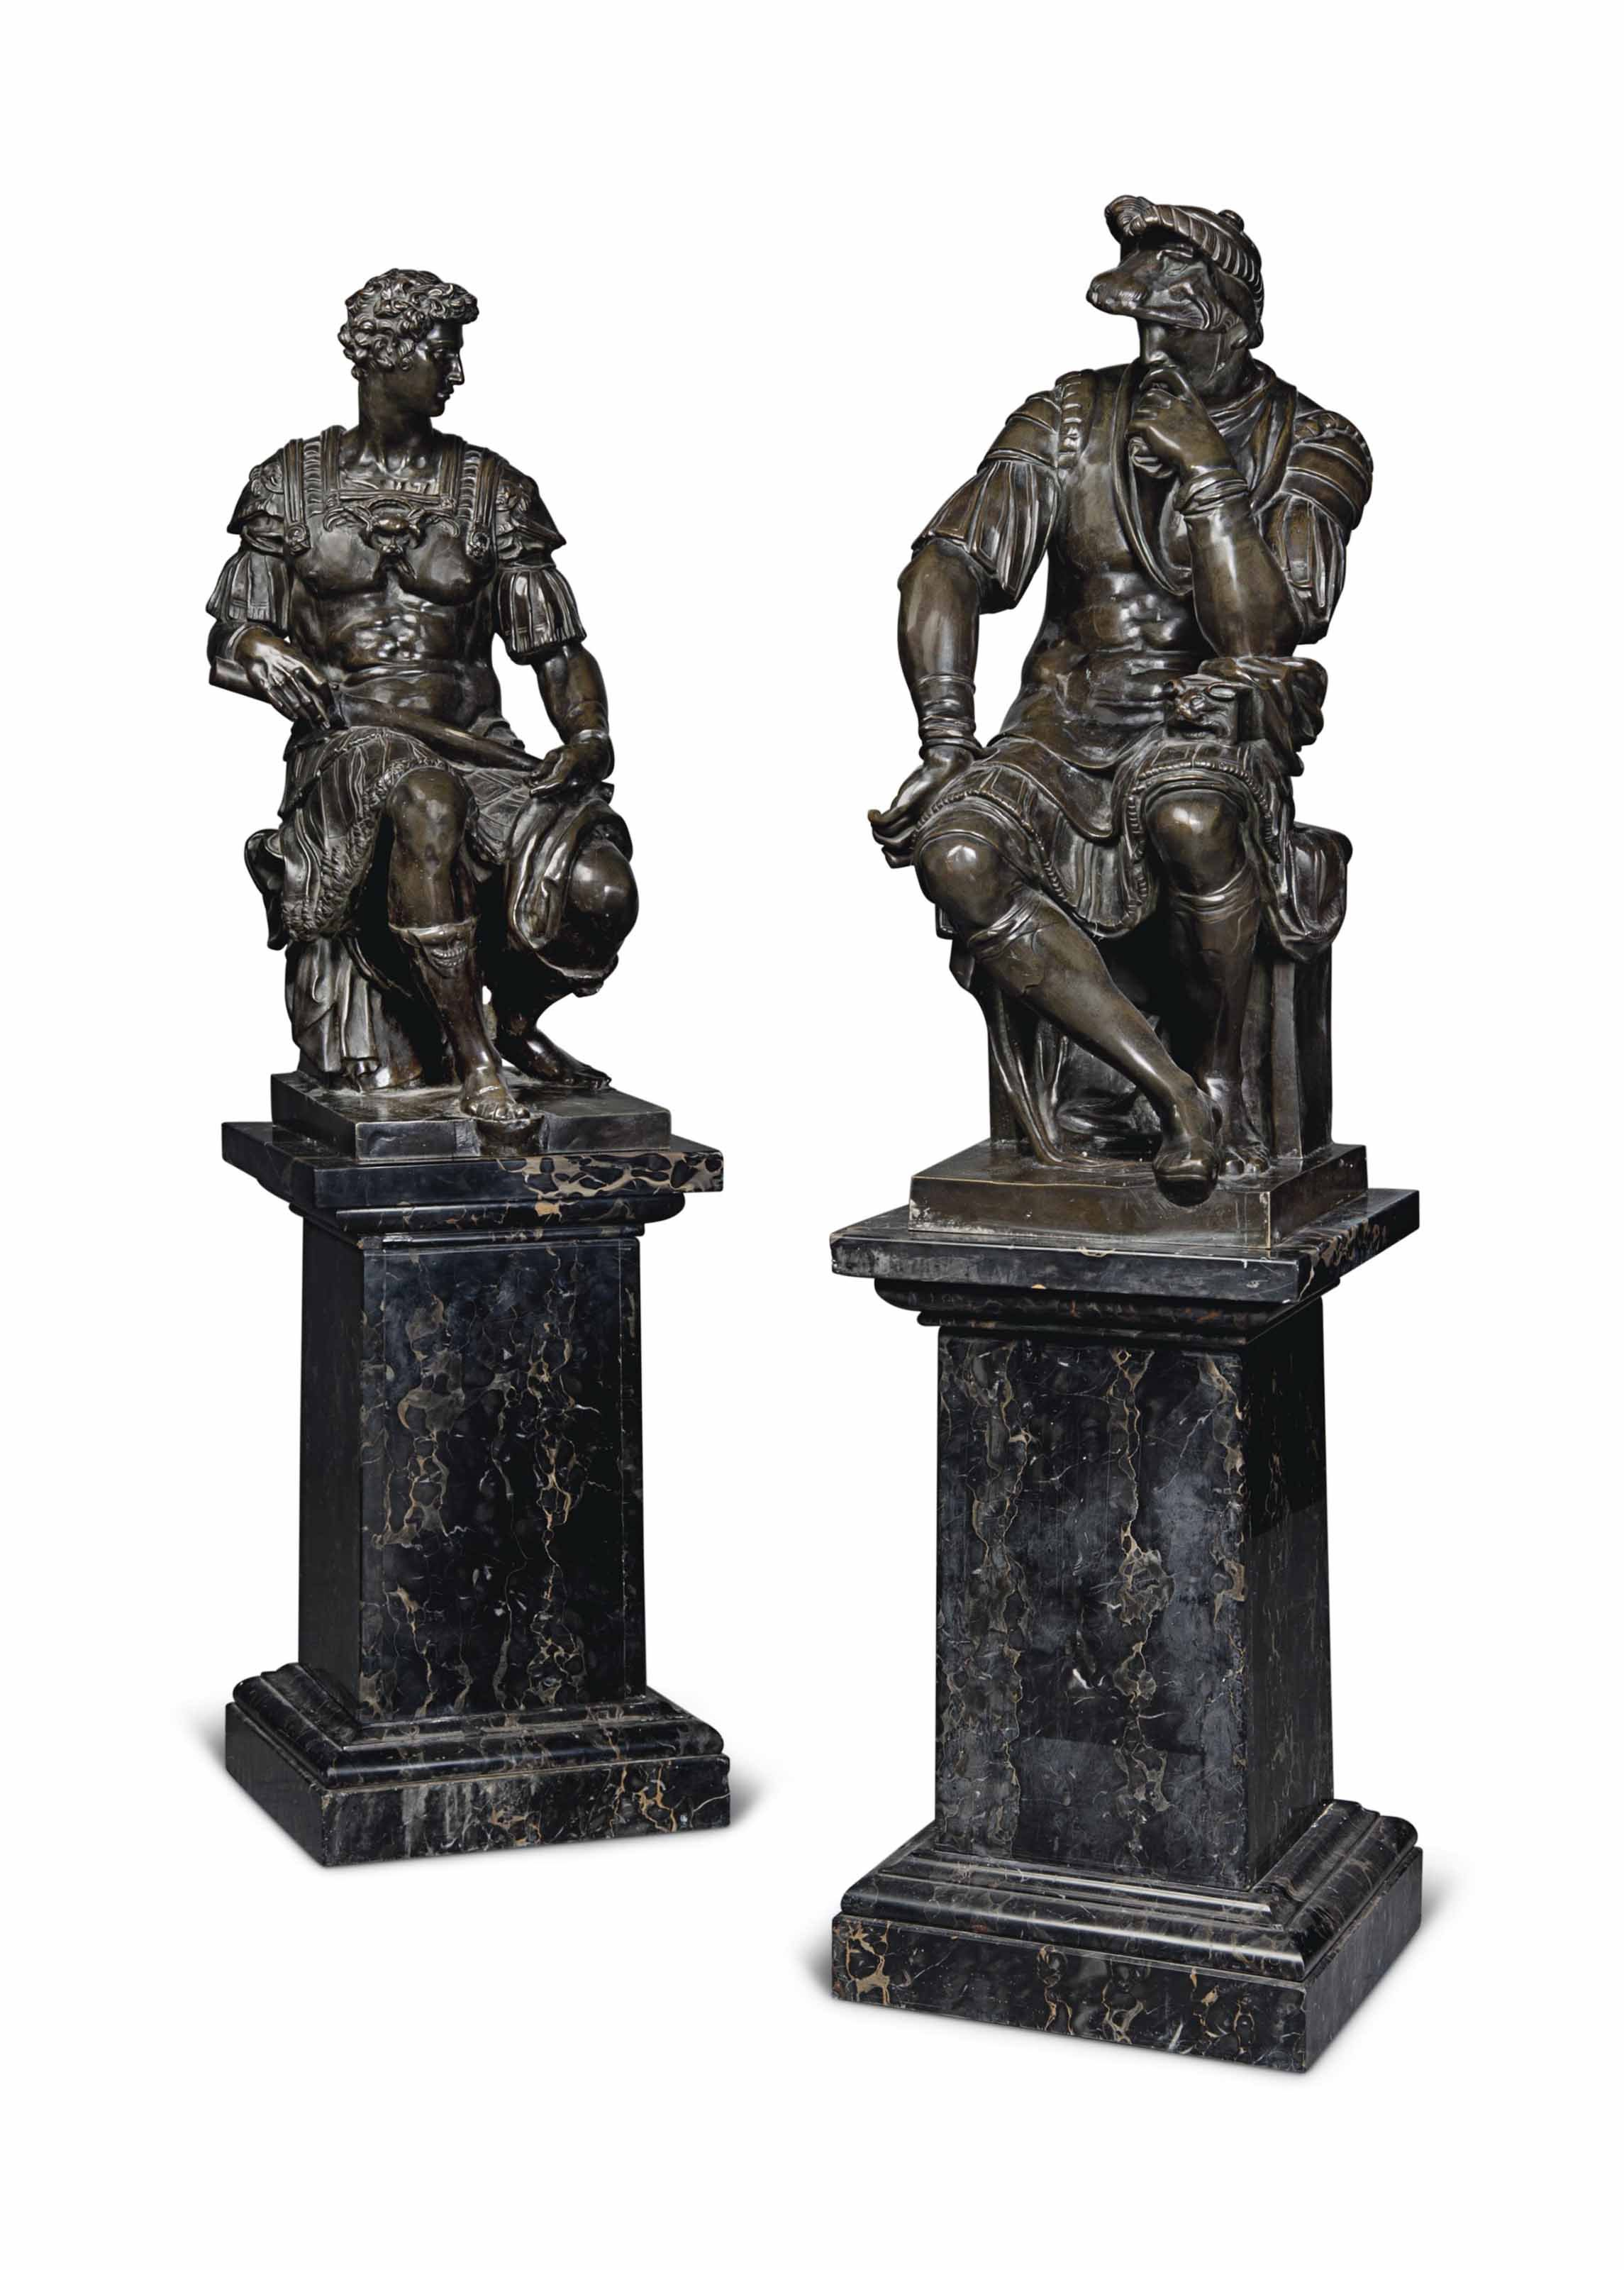 2016_CSK_12035_0005_000(a_pair_of_french_bronze_statues_of_giuliano_and_lorenzo_de_medici_late).jpg